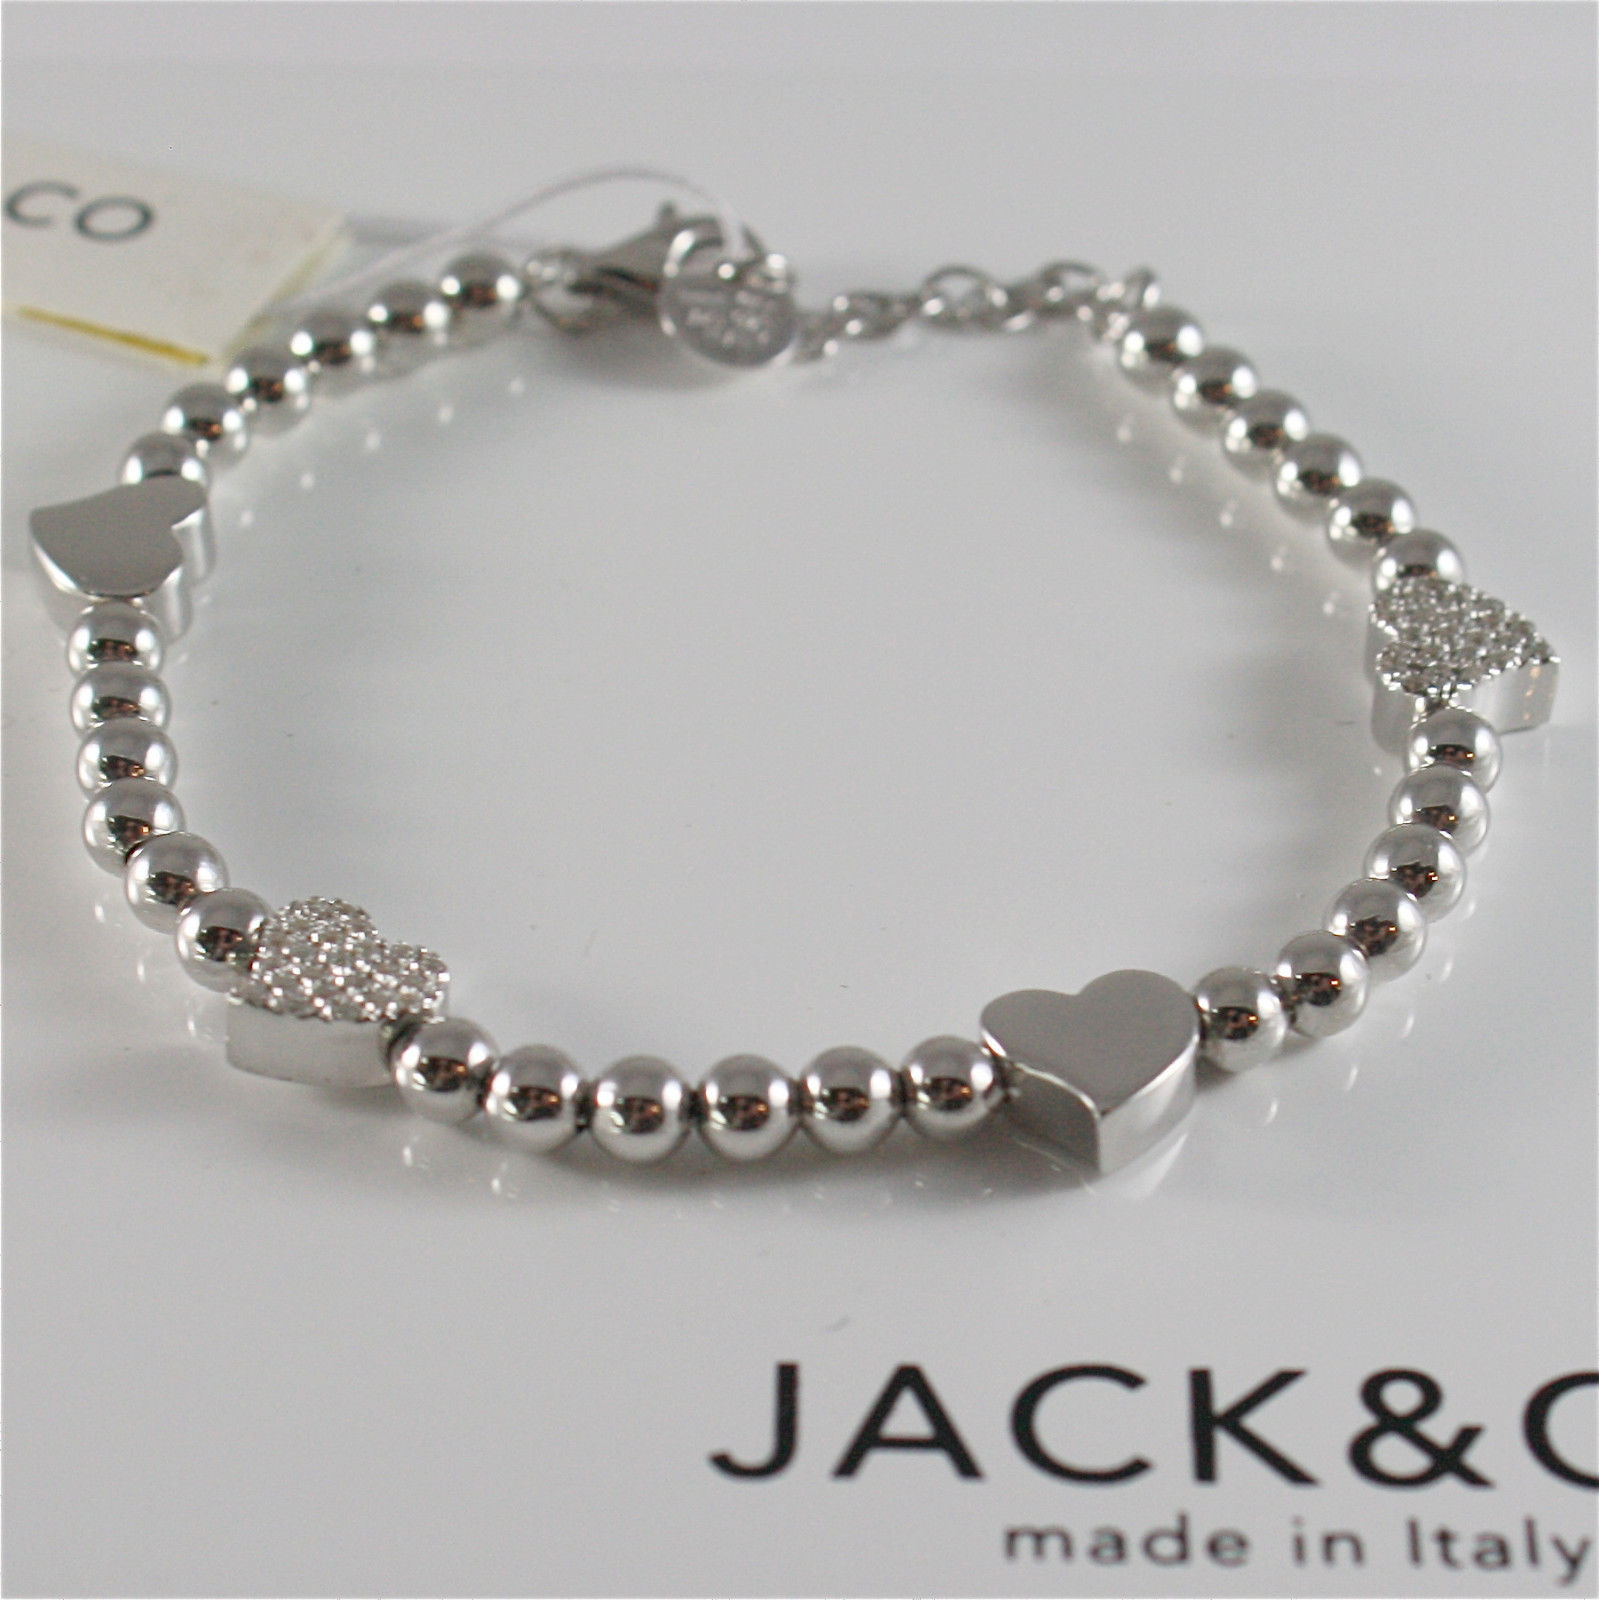 925 RHODIUM SILVER JACK&CO BRACELET WITH SHINY HEART LOVE  MADE IN ITALY 7.25 IN